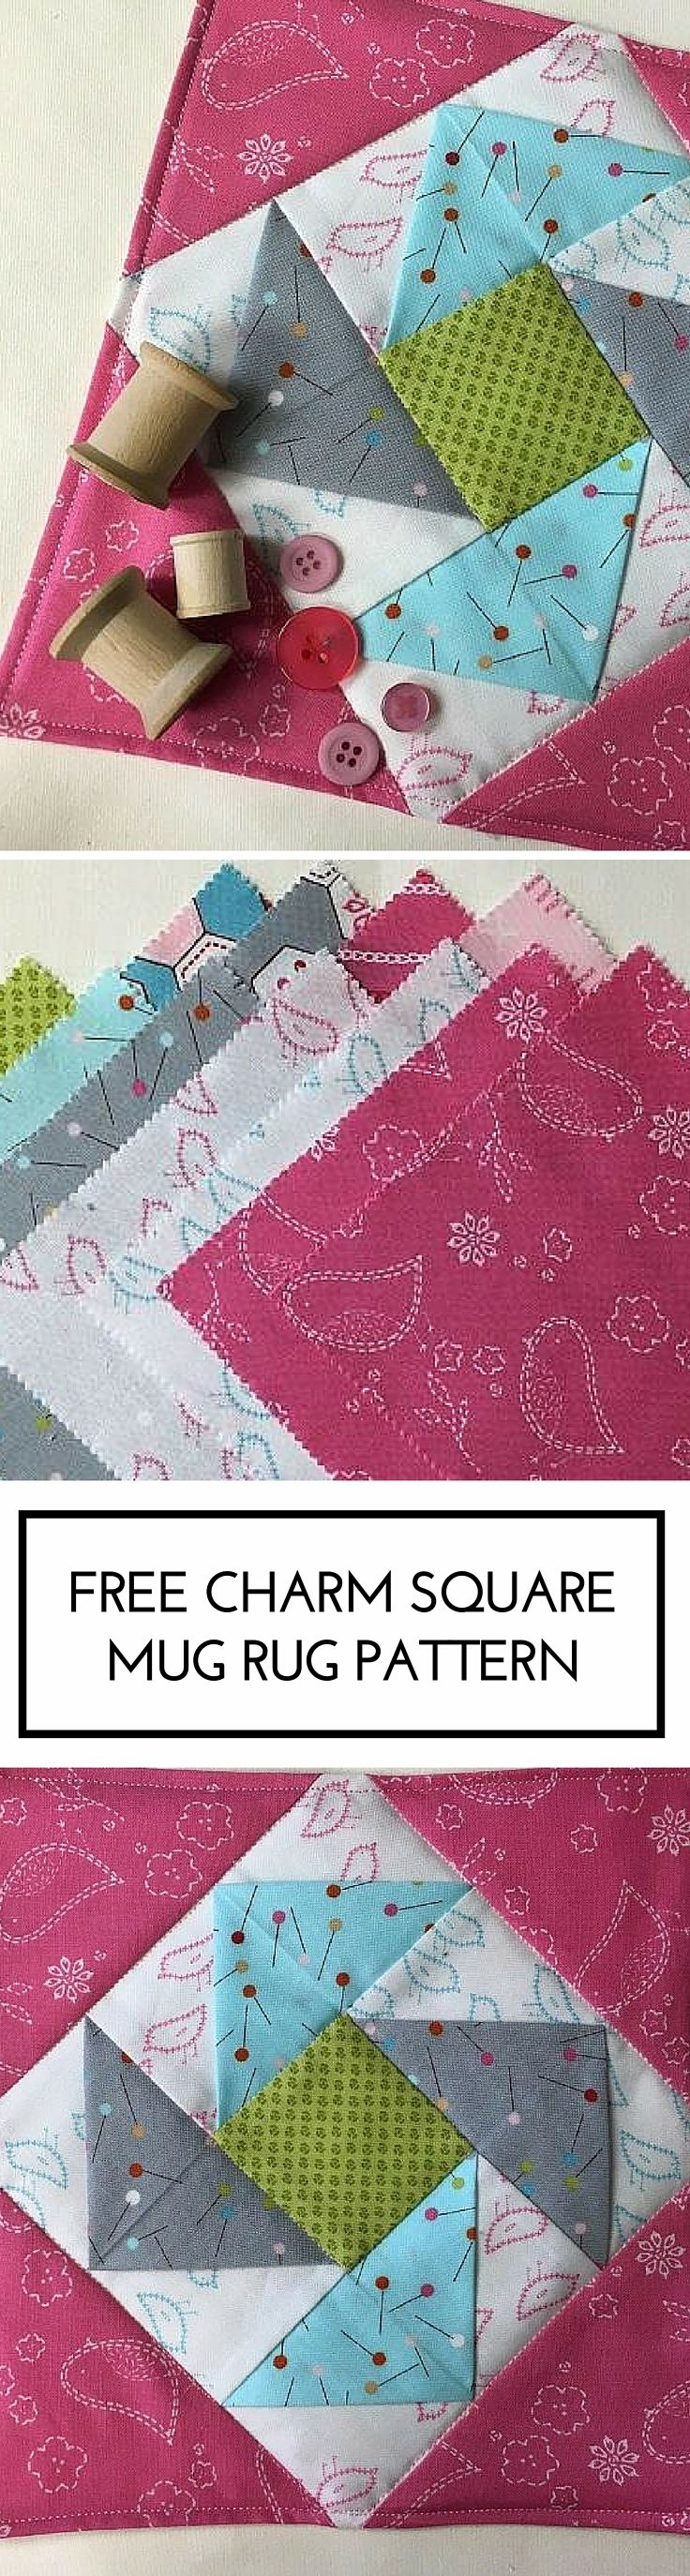 Free and simple charm square mug rug pattern for quilters